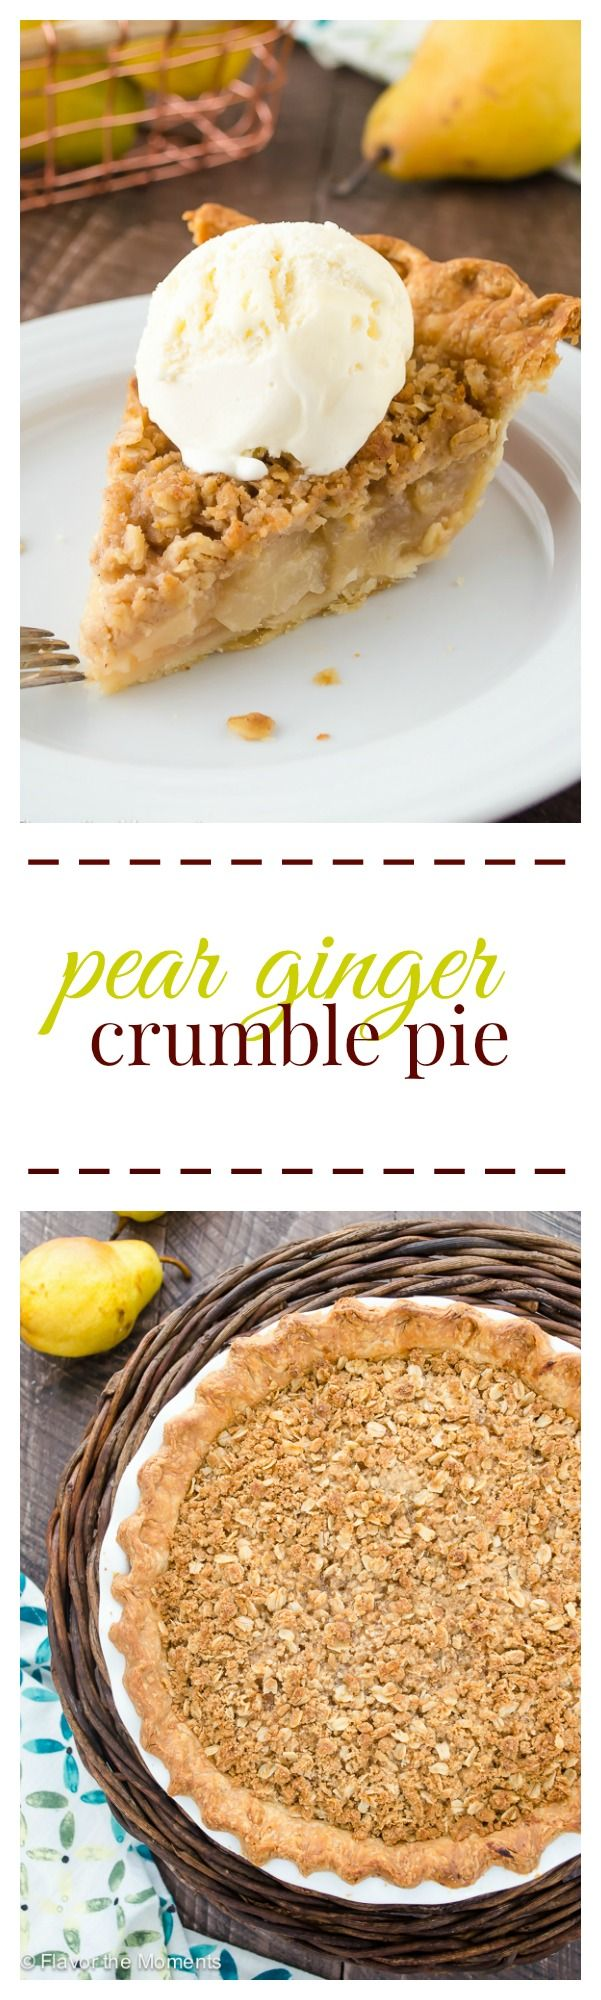 Pear Ginger Crumble Pie Collage | flavorthemoments.com